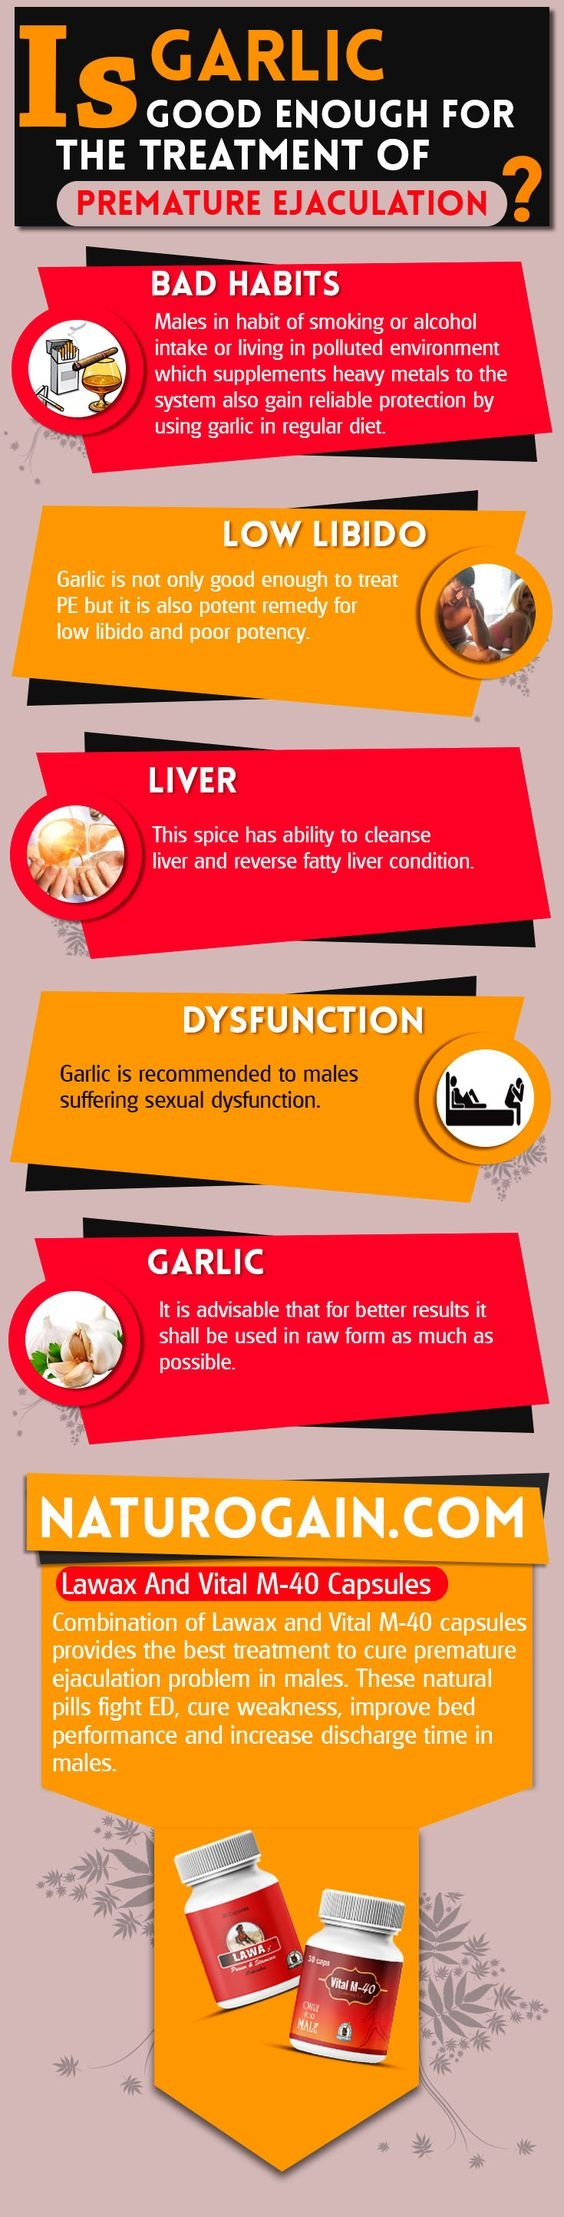 Is garlic good enough for the treatment of premature